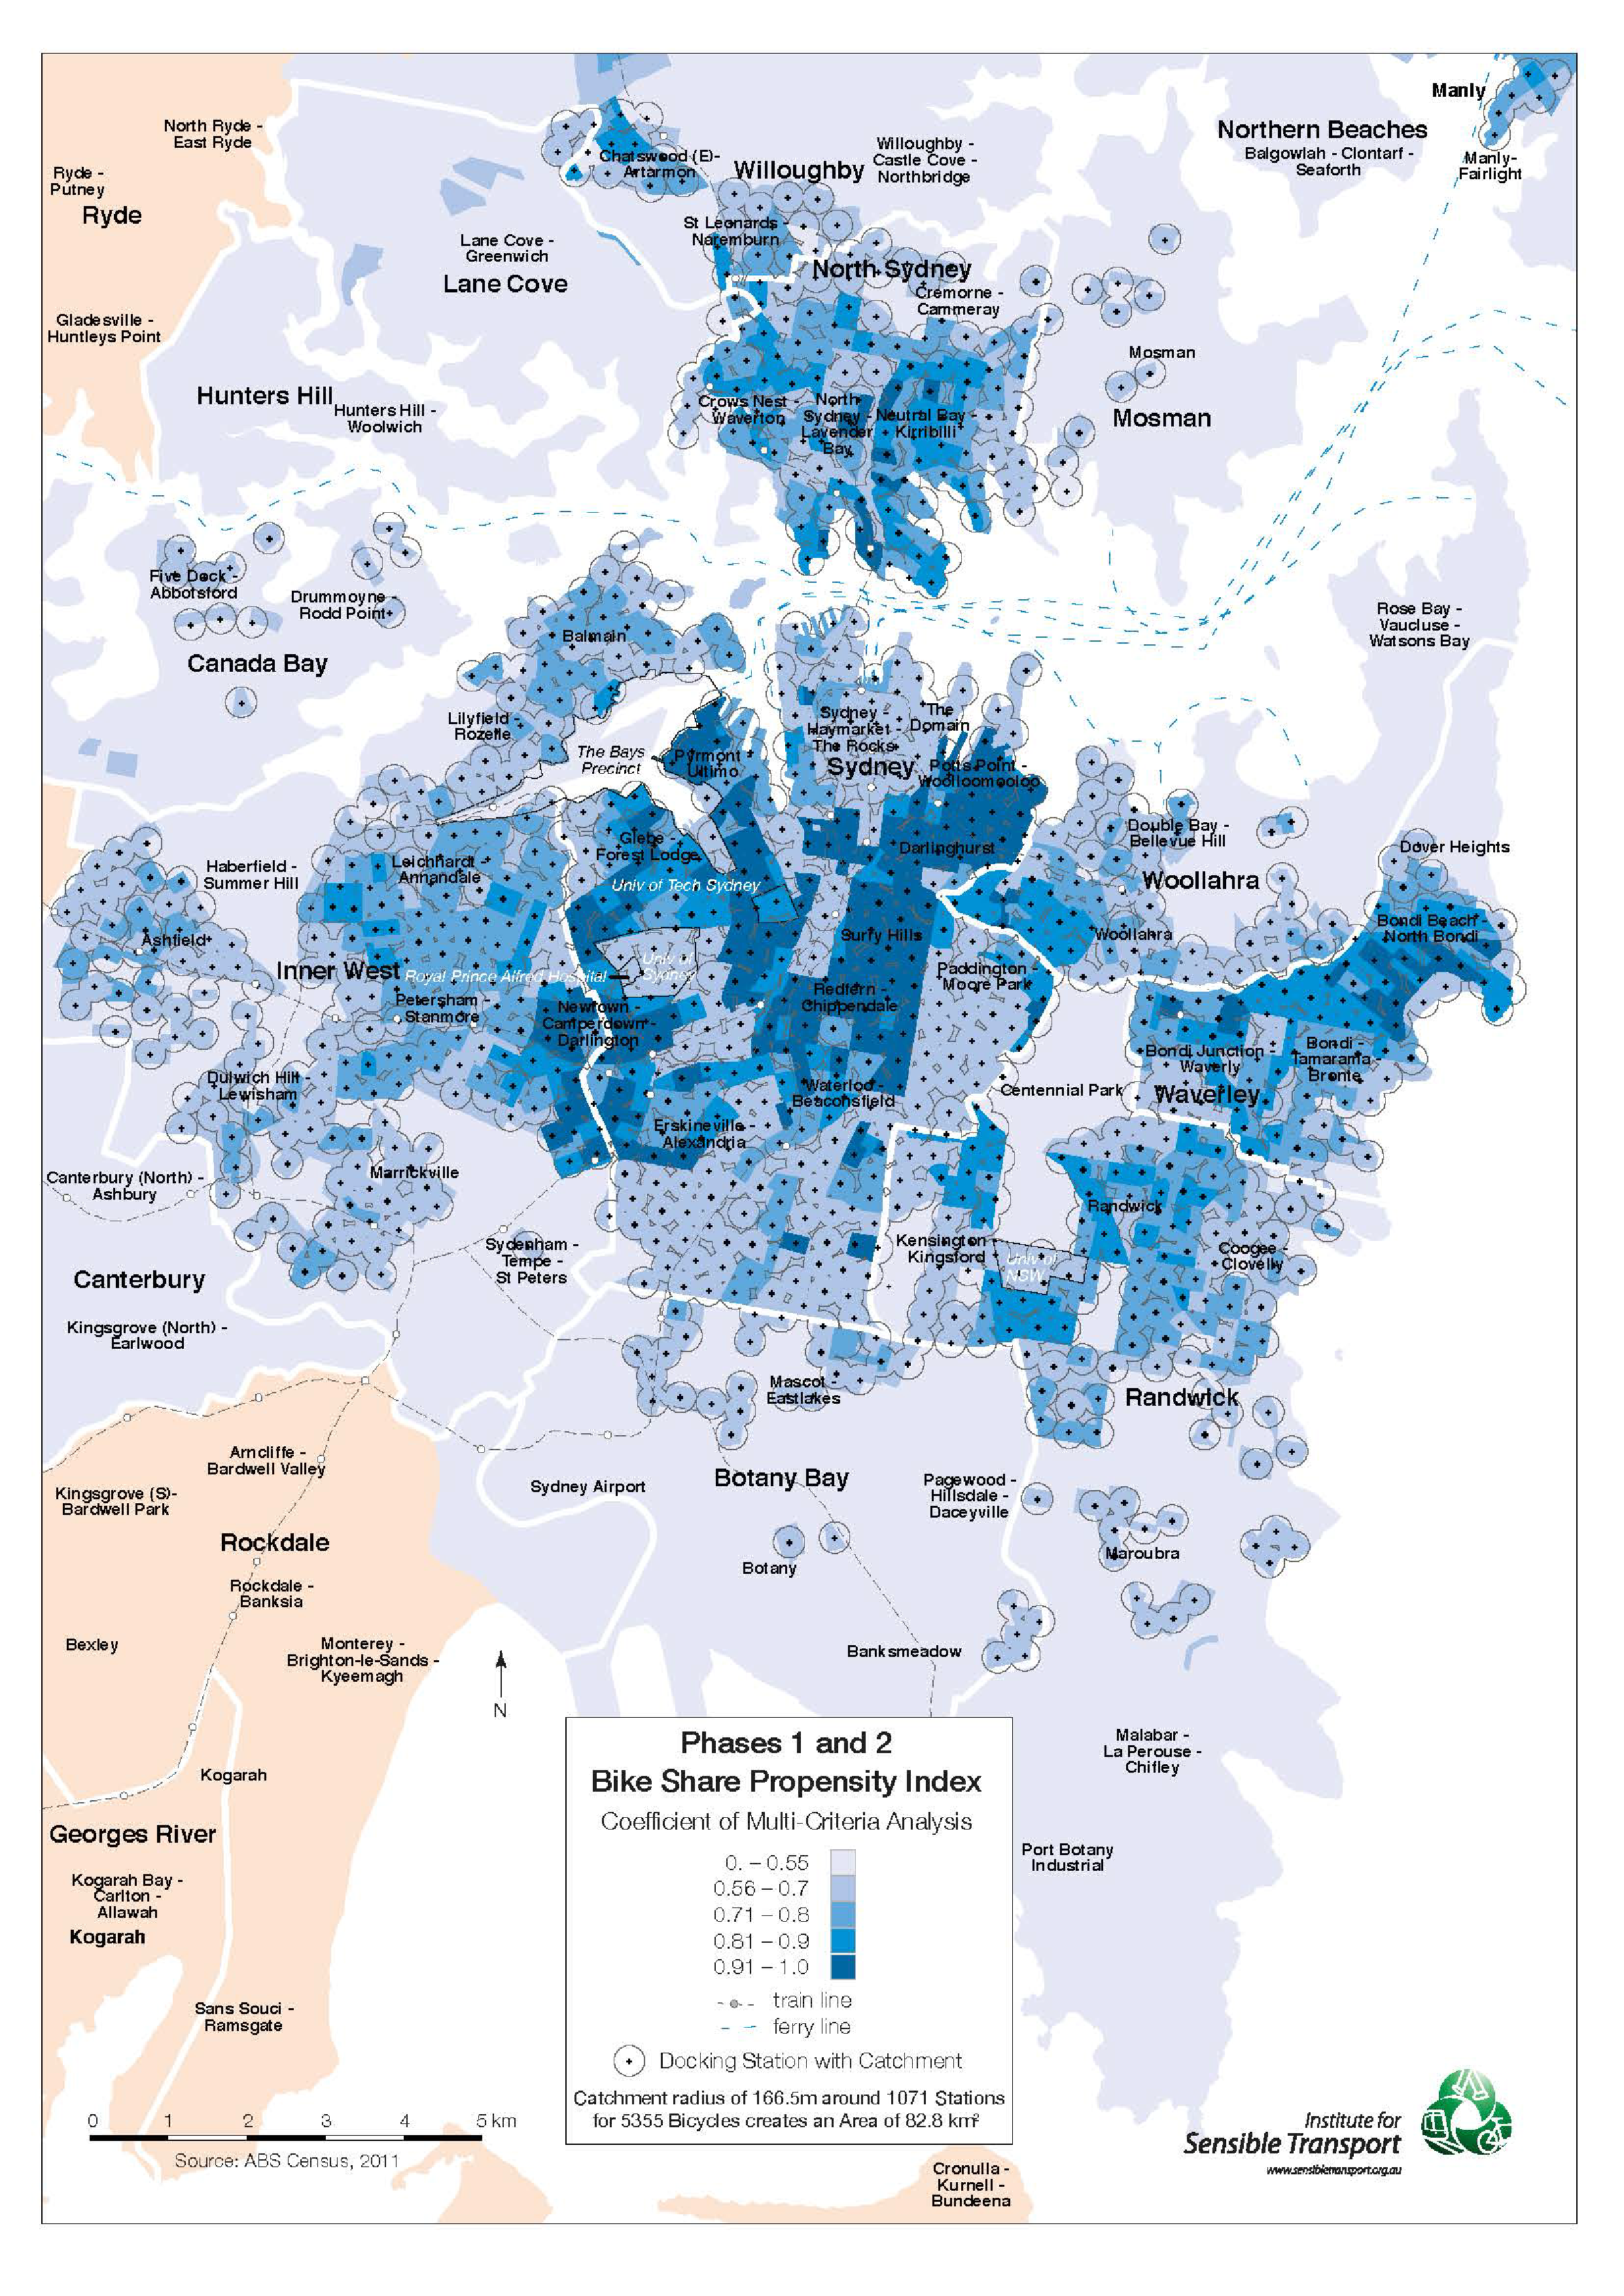 Bike Share Catchment Map (proposed) and Propensity Index